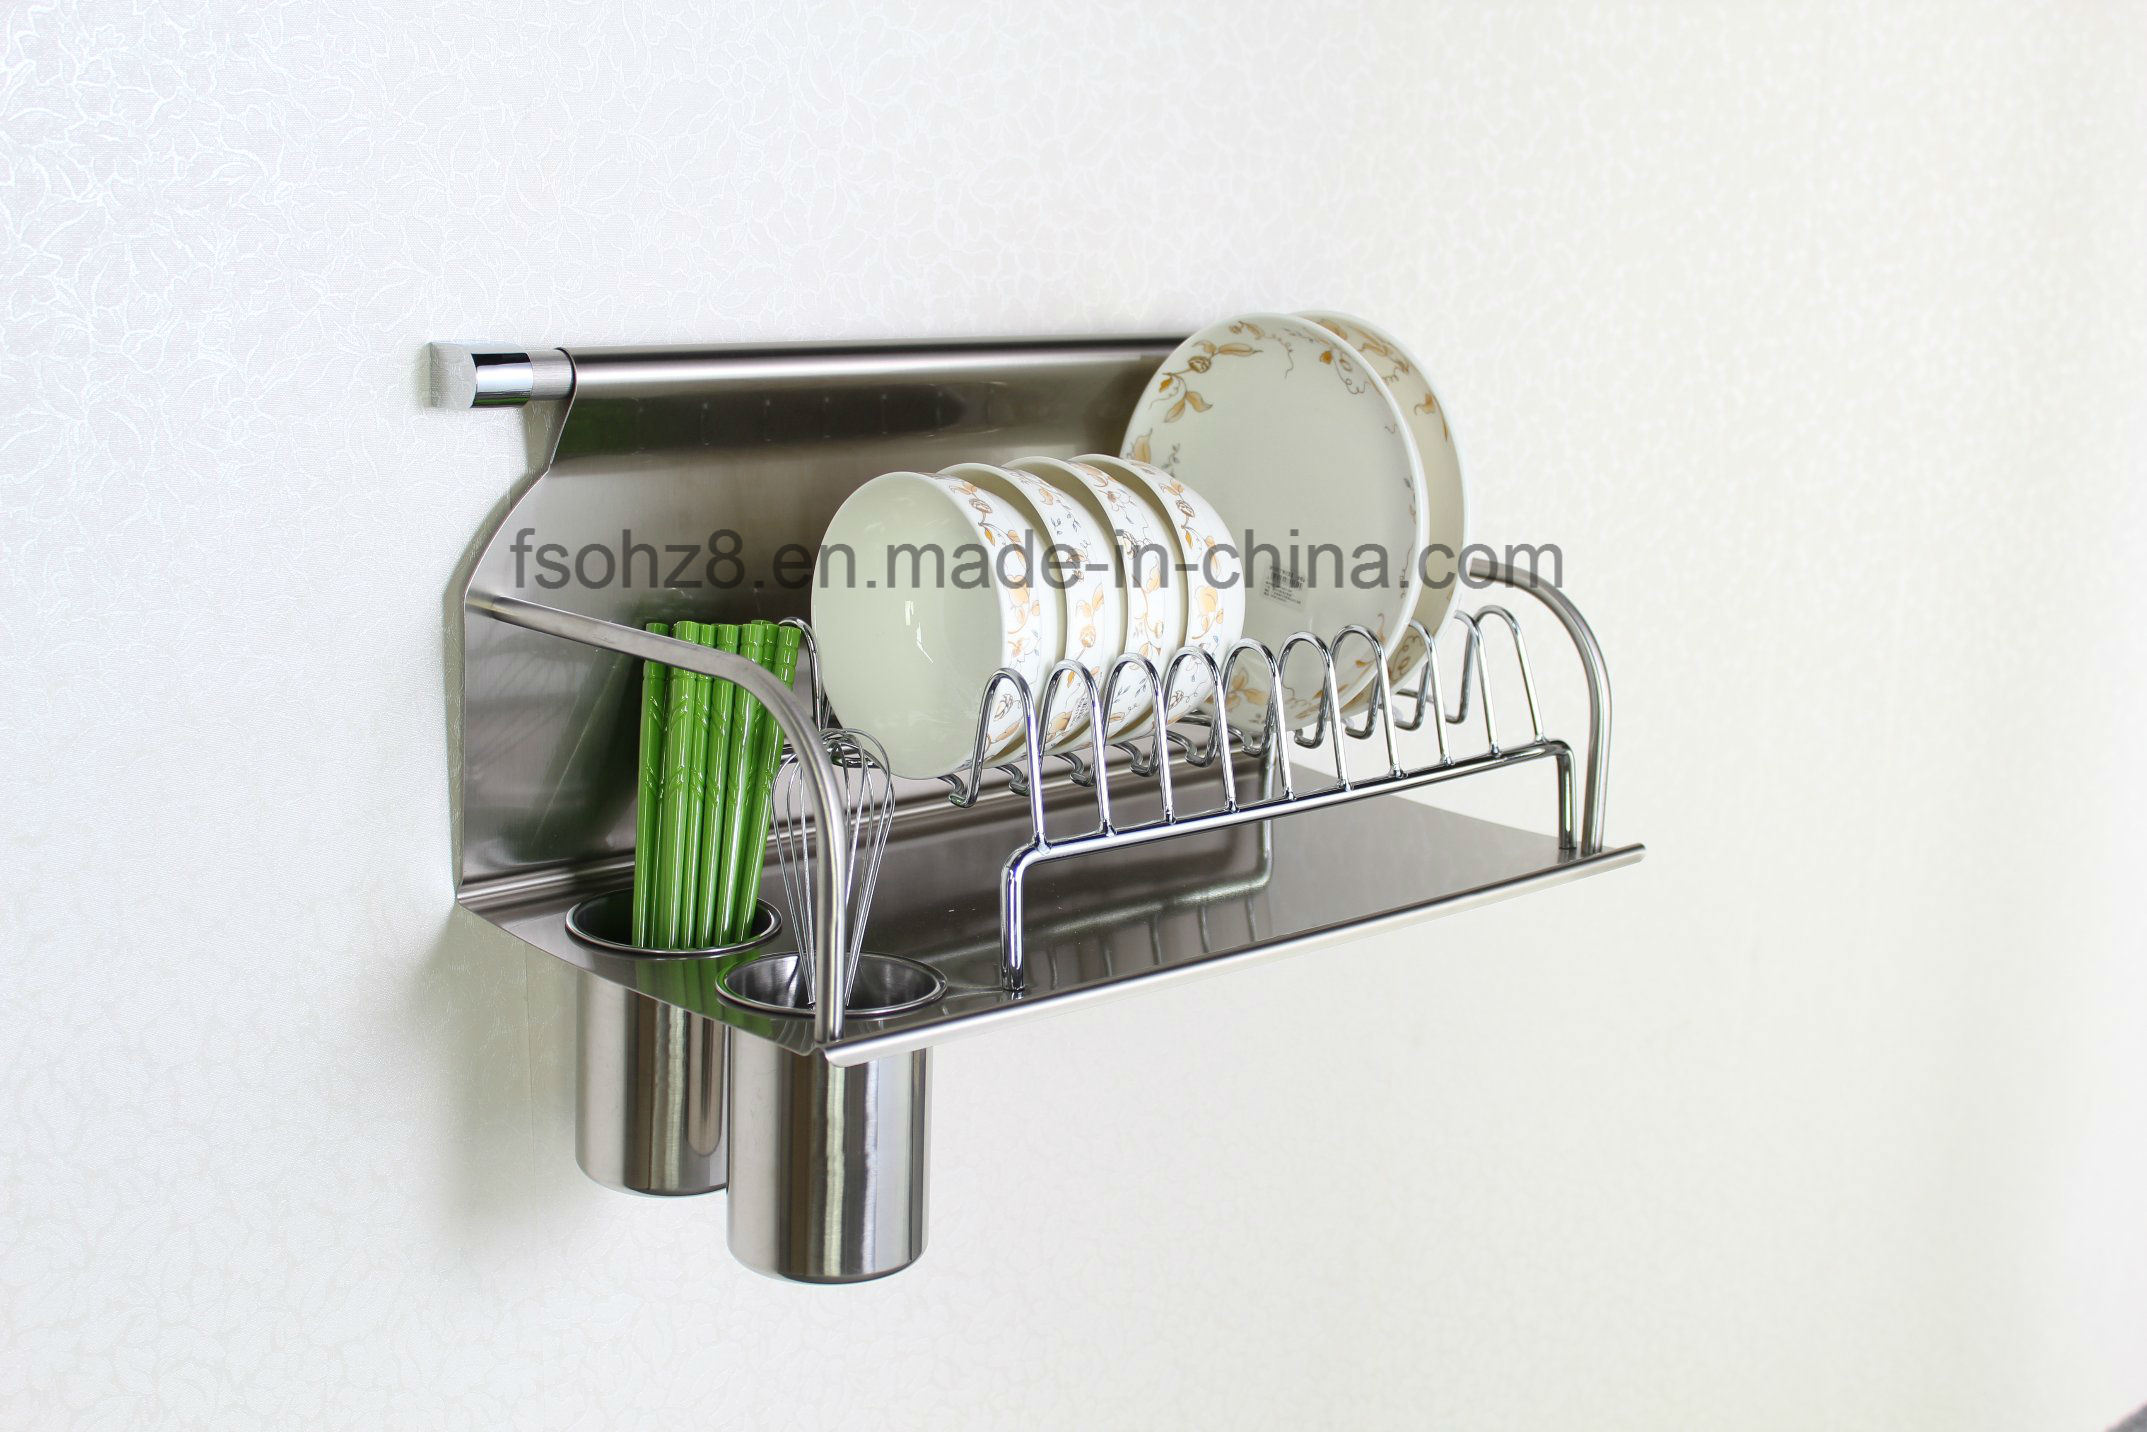 Stainless Dish Drying Rack with Chopsticks Bottle Kitchen Accessories (604)